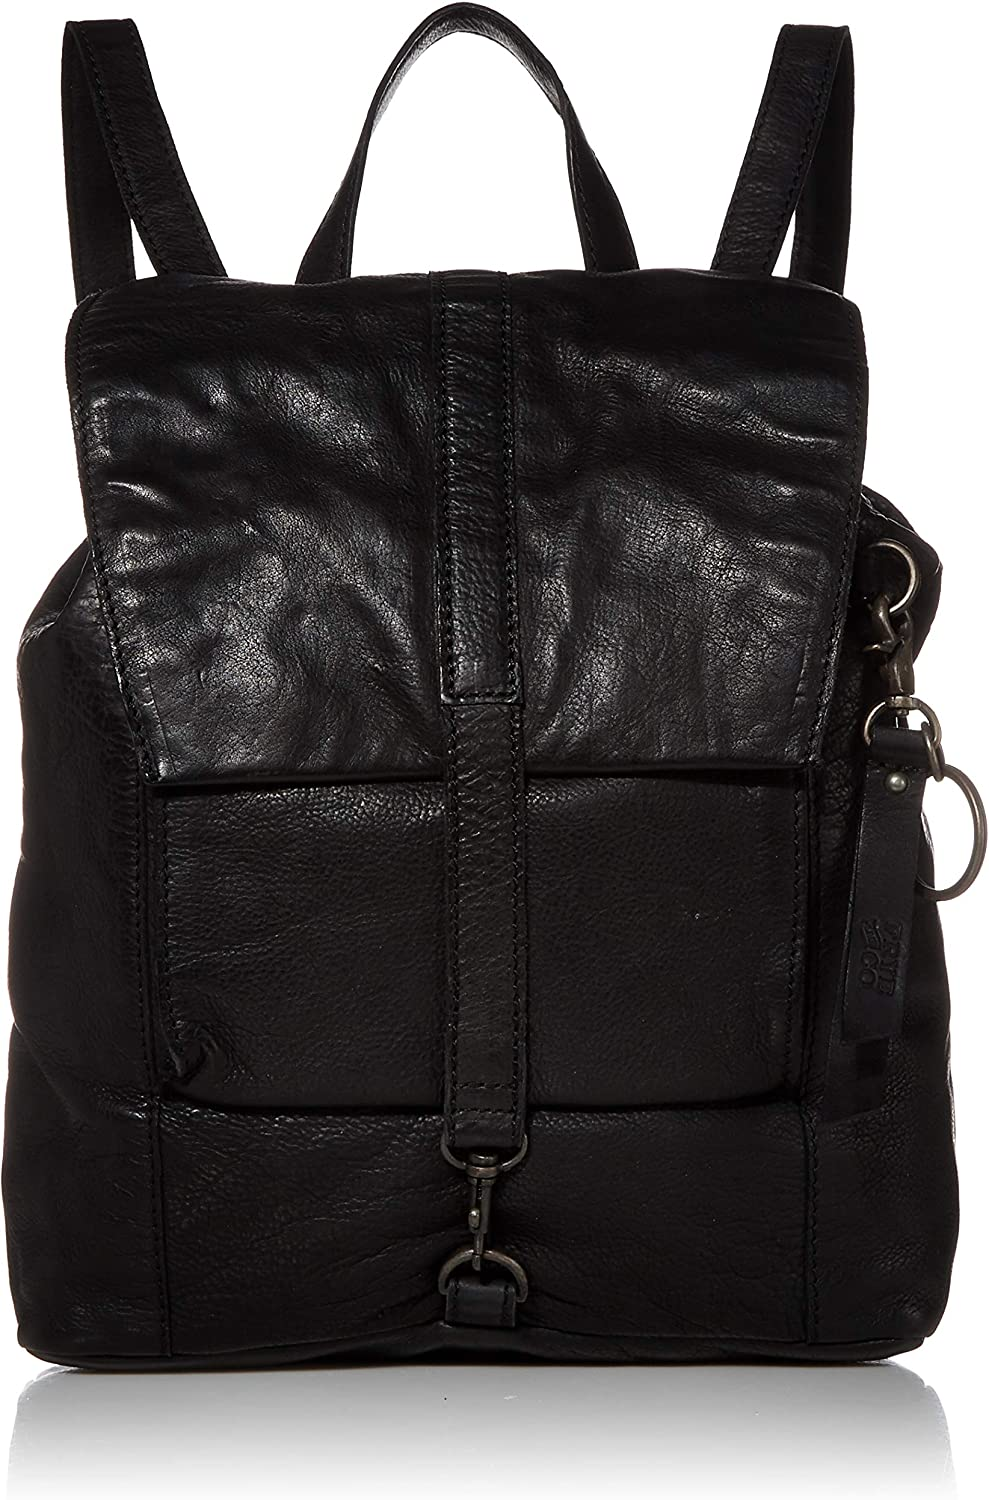 Frye and Co Handbags Rubie Leather Small Backpack